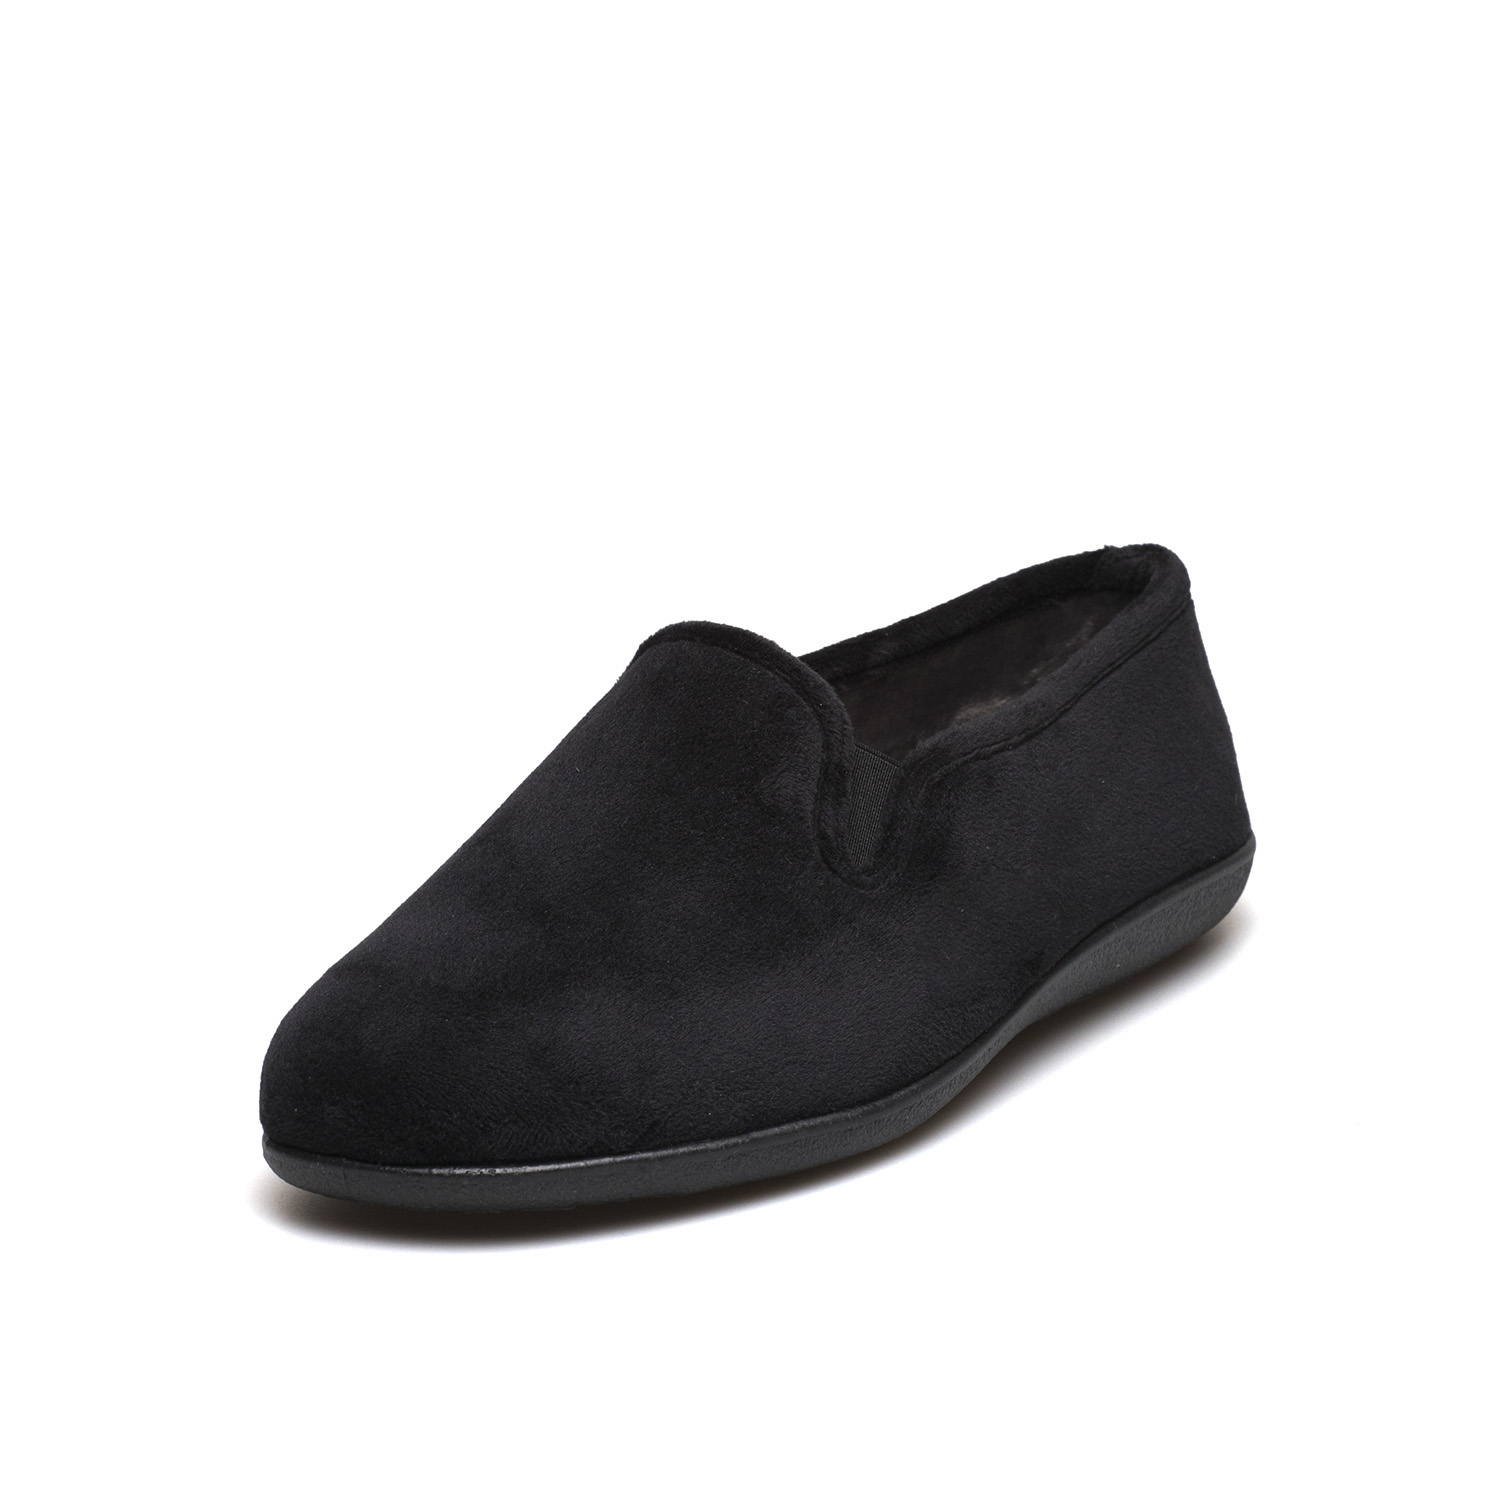 RPC SHOE BLACK